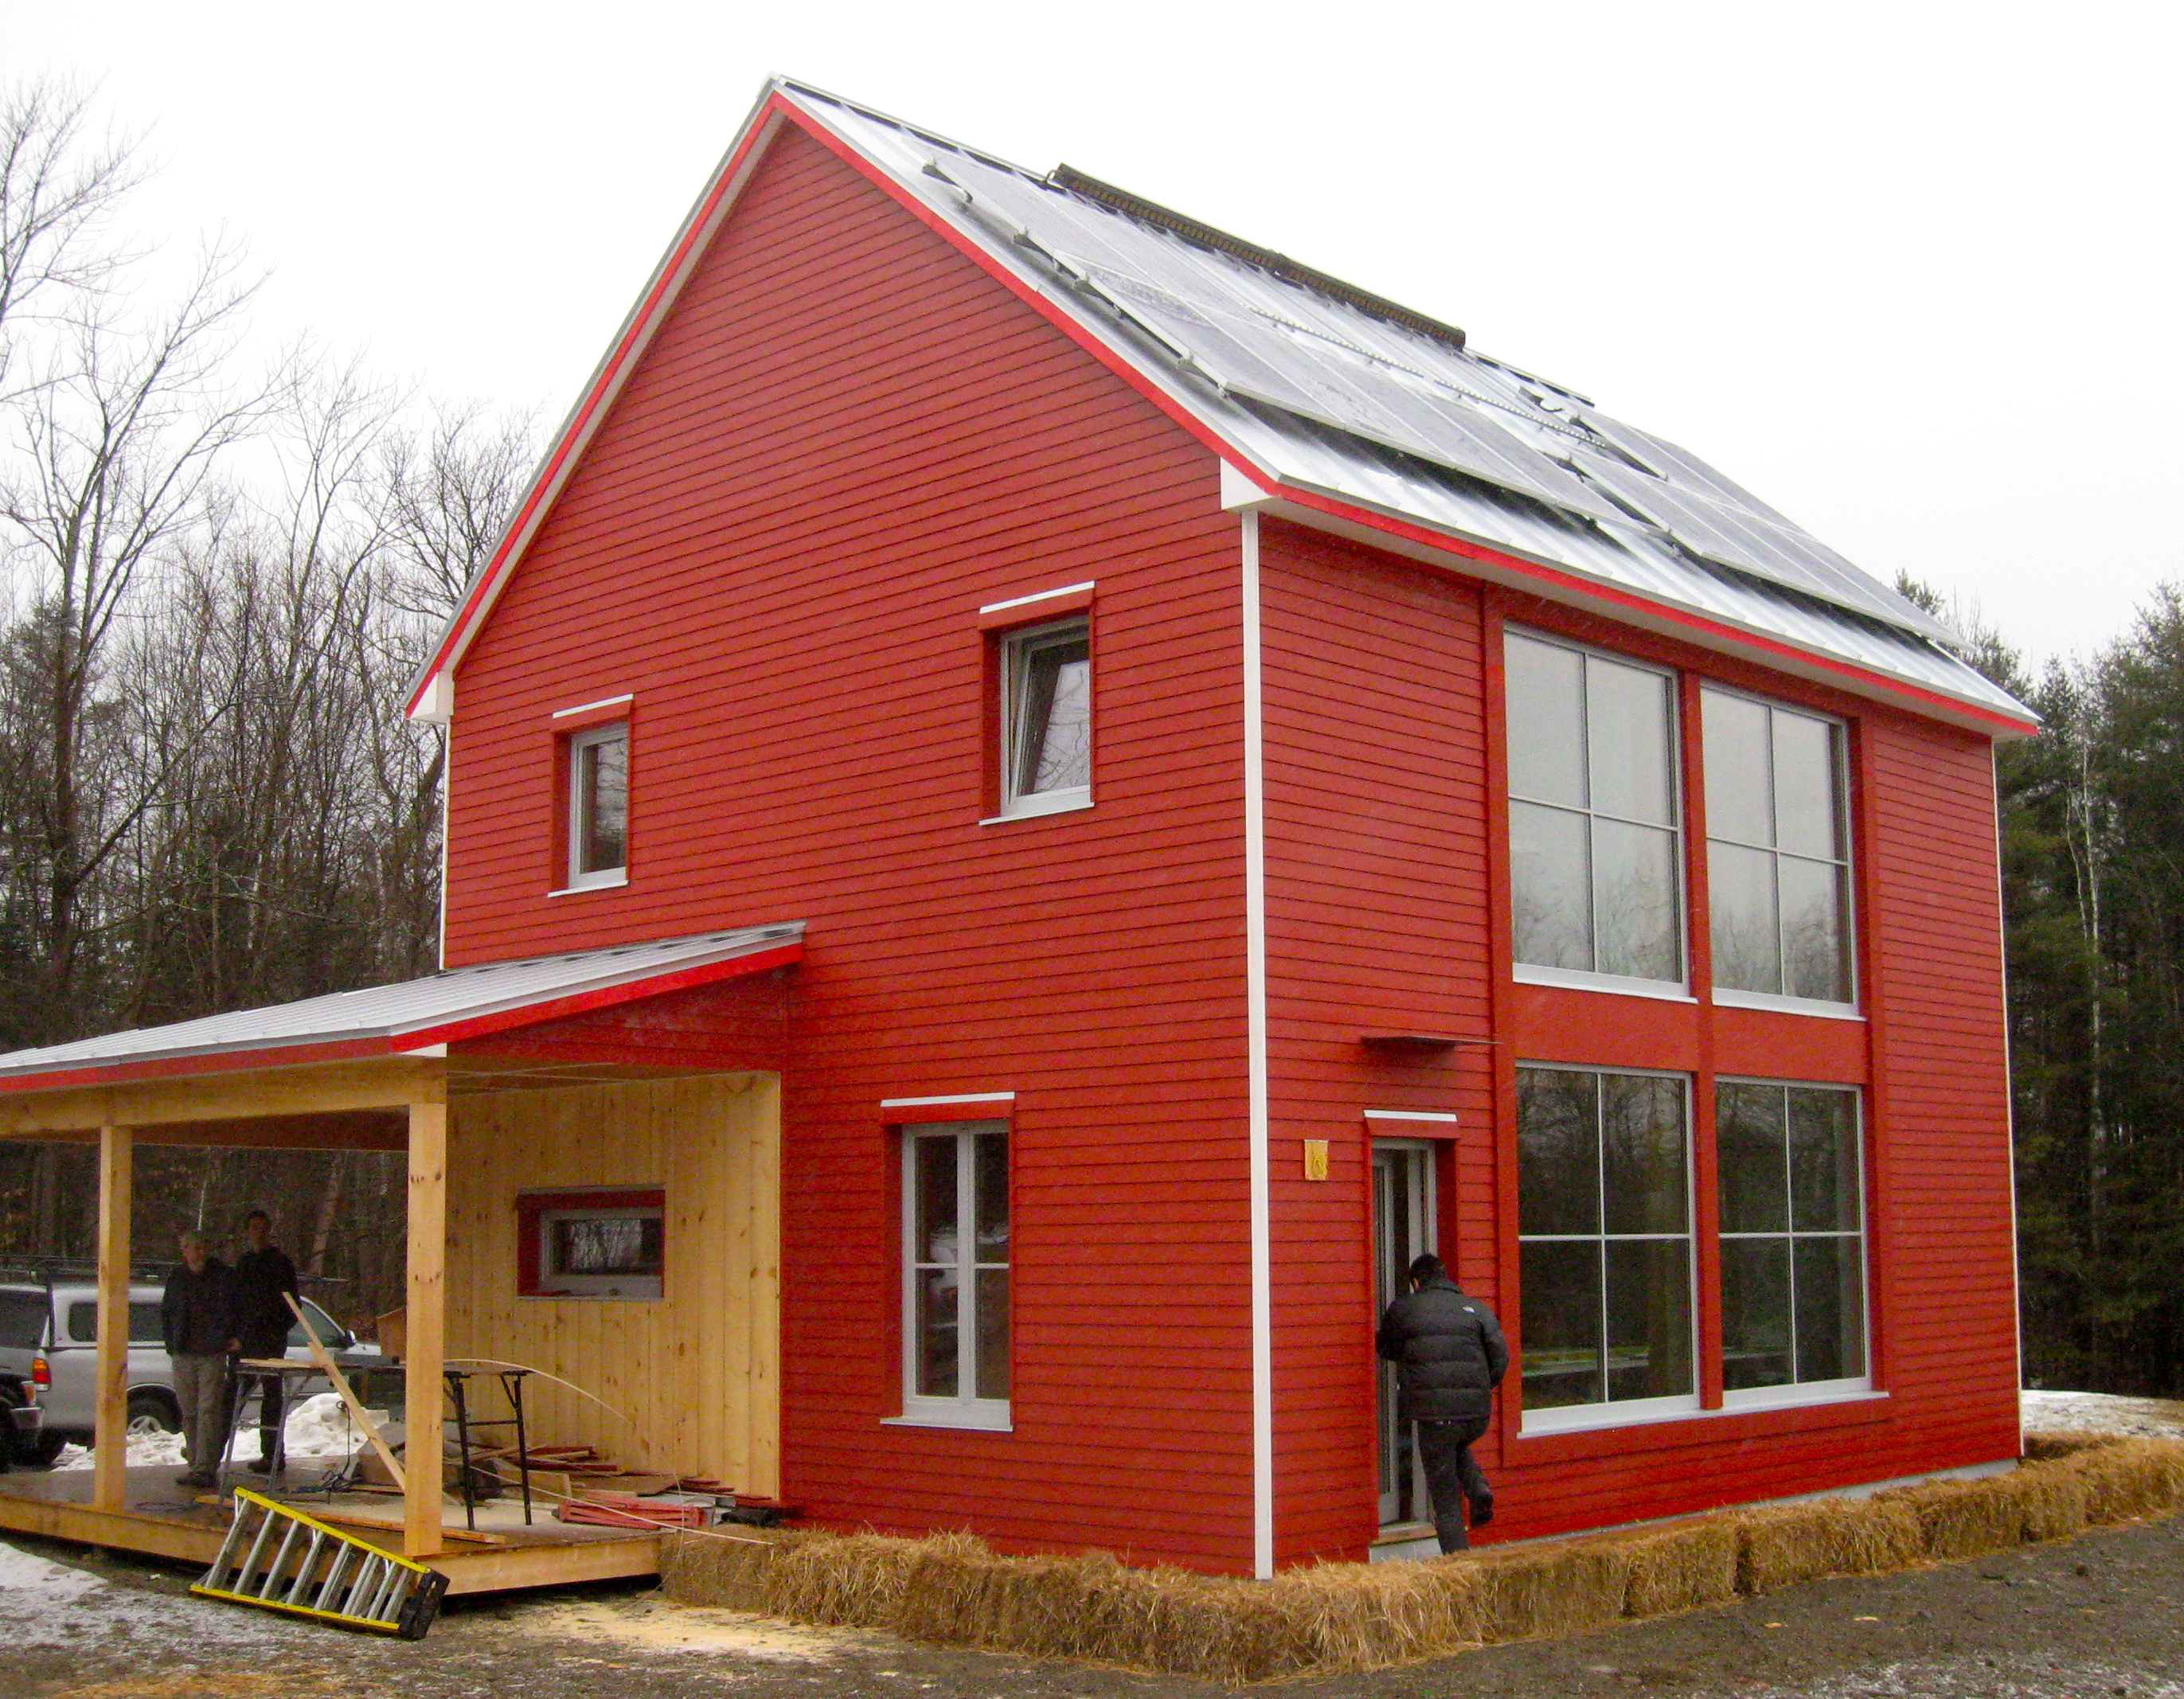 The student passive house design charette unity college for Cold climate house plans